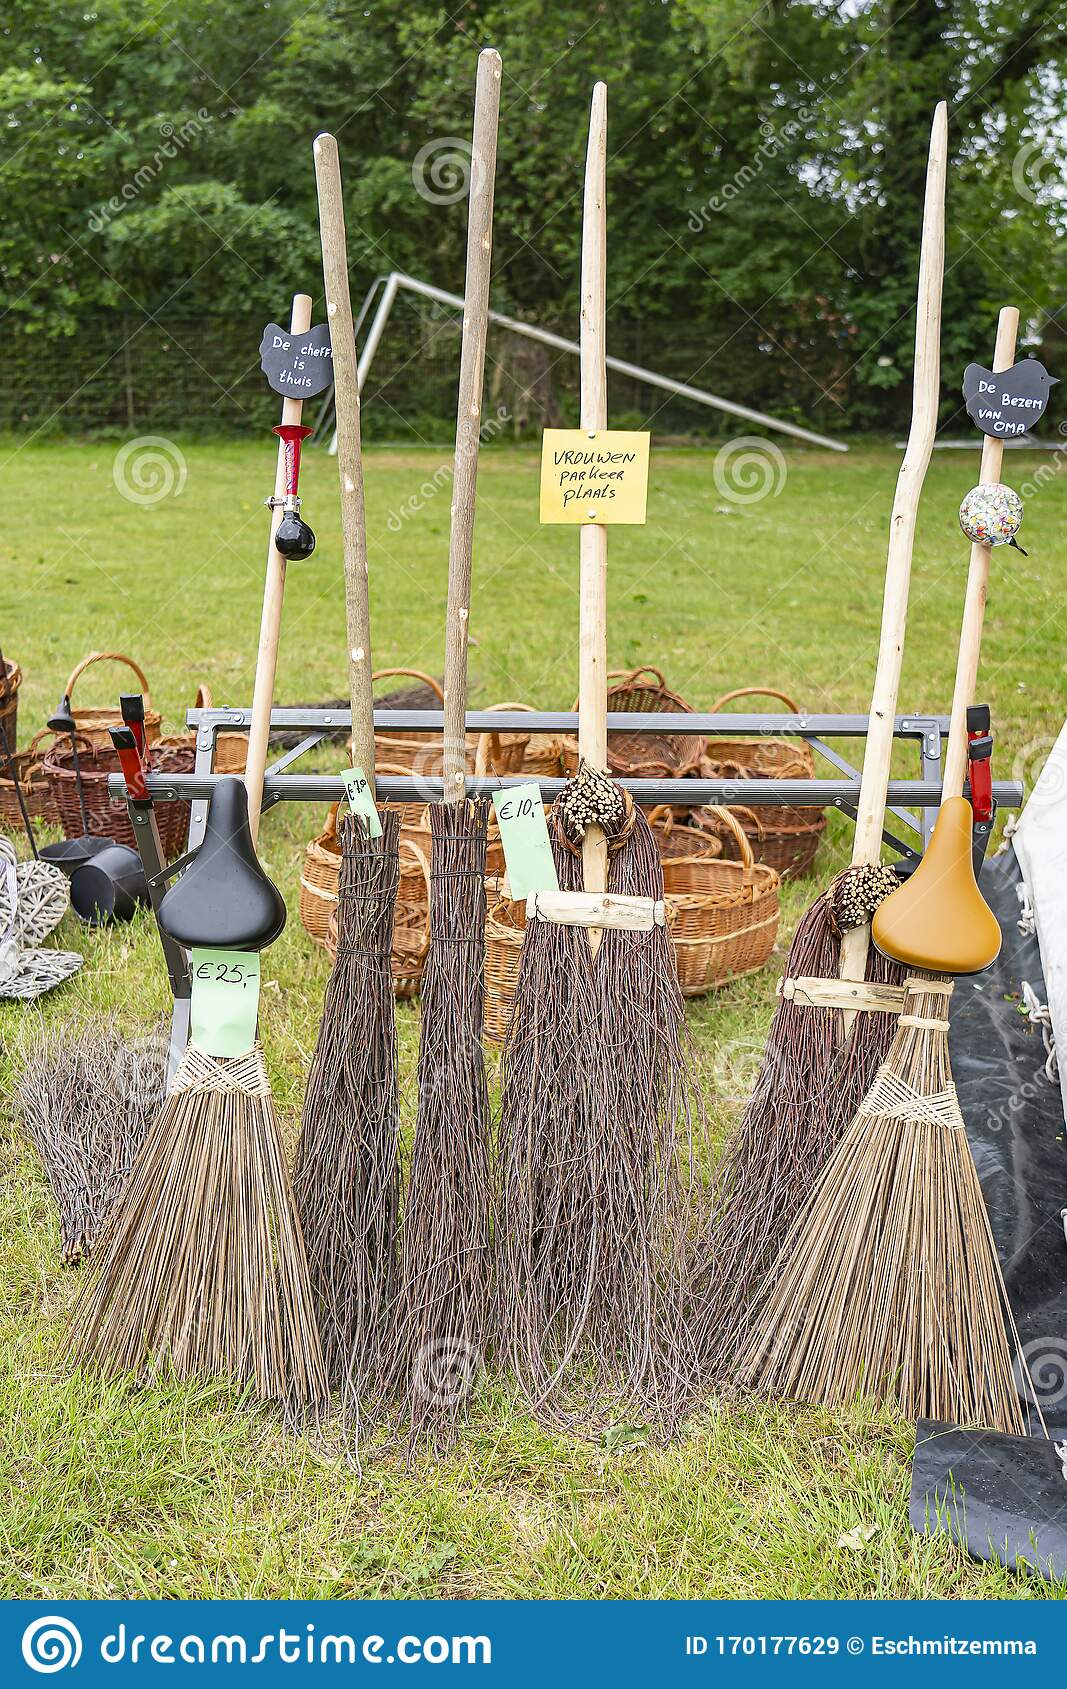 Witches Brooms In A Variety Of Designs At The Sheepshearingfestival In  Exloo, The Netherlands Stock Image - Image of harvest, season: 170177629